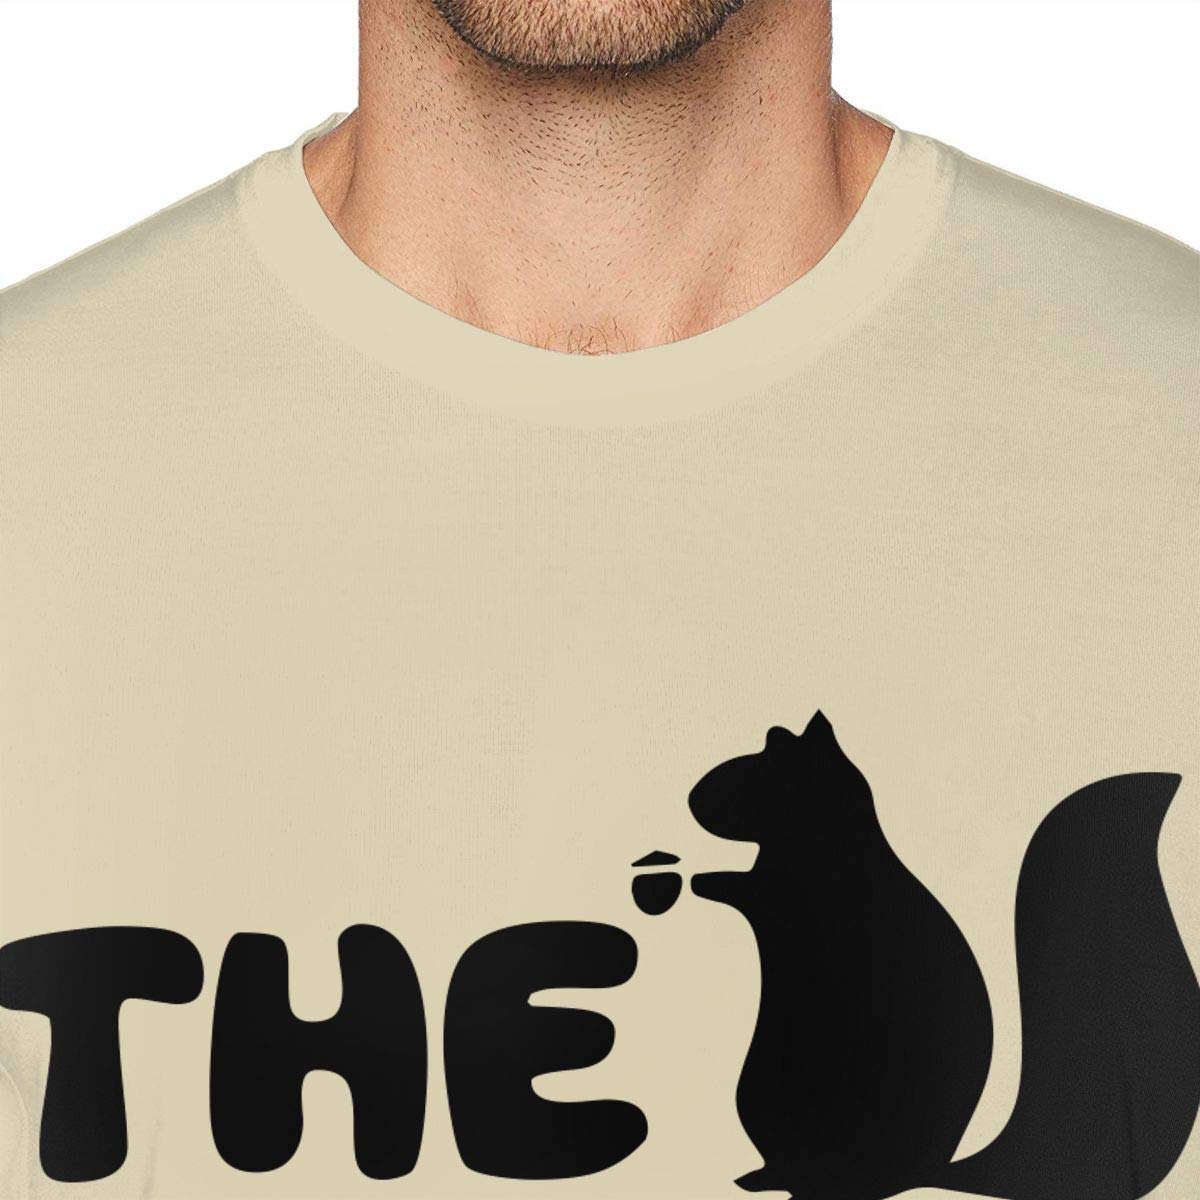 MSKKLA The Squirrel Whisperer Funny T-Shirt Men Comfortable Short Sleeves T-Shirts Tee Shirts Size:S-6XL